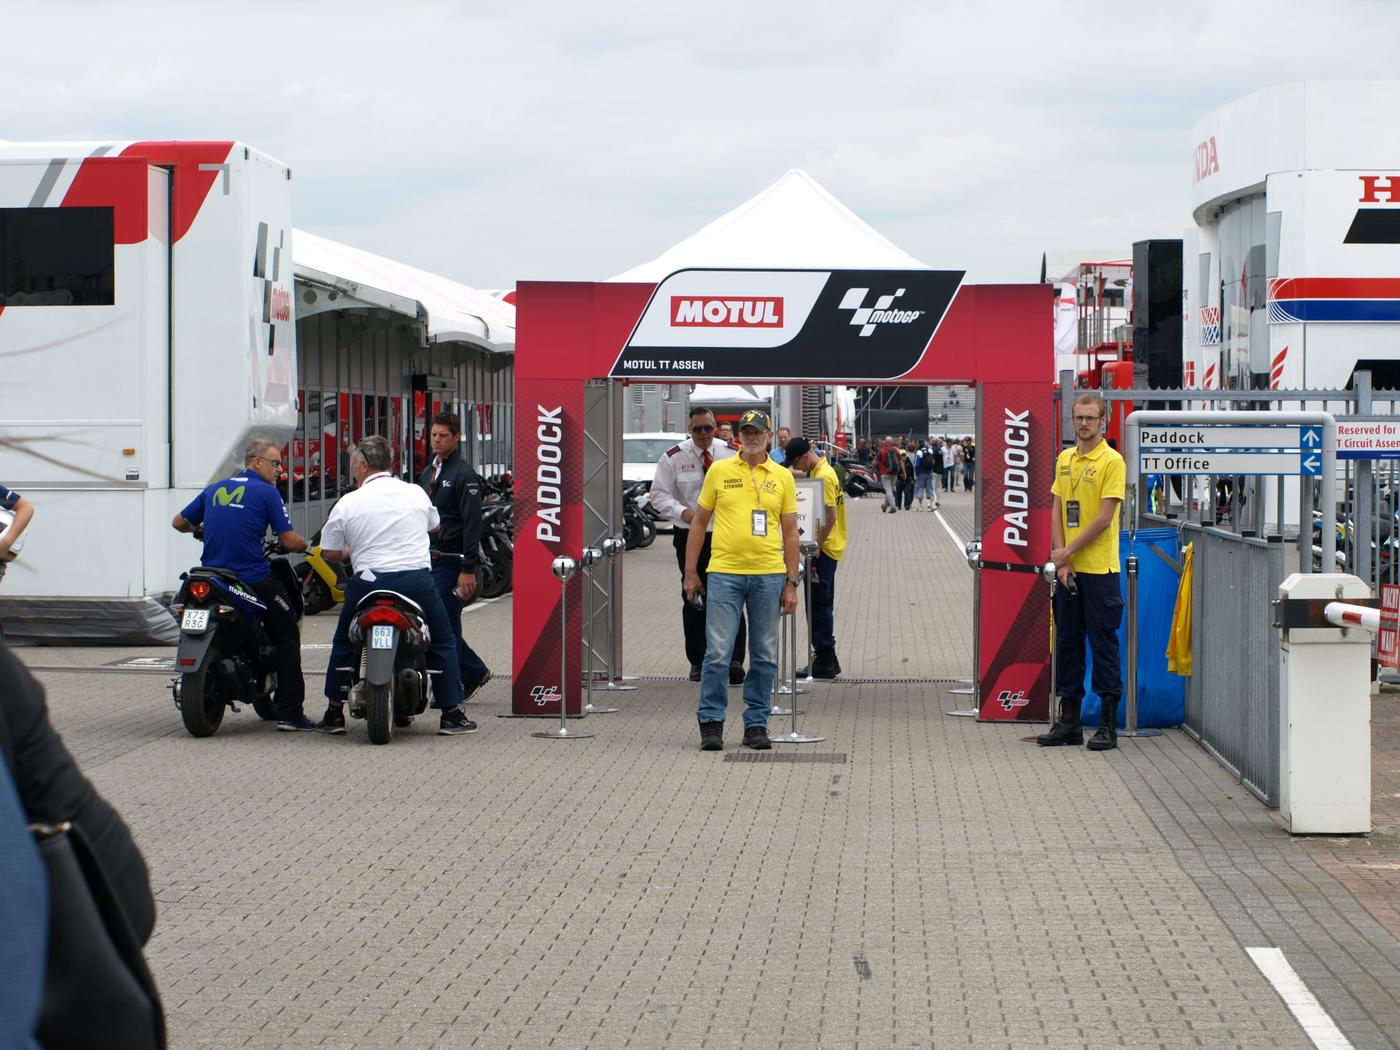 Toegangscontrole Dutch TT 2019